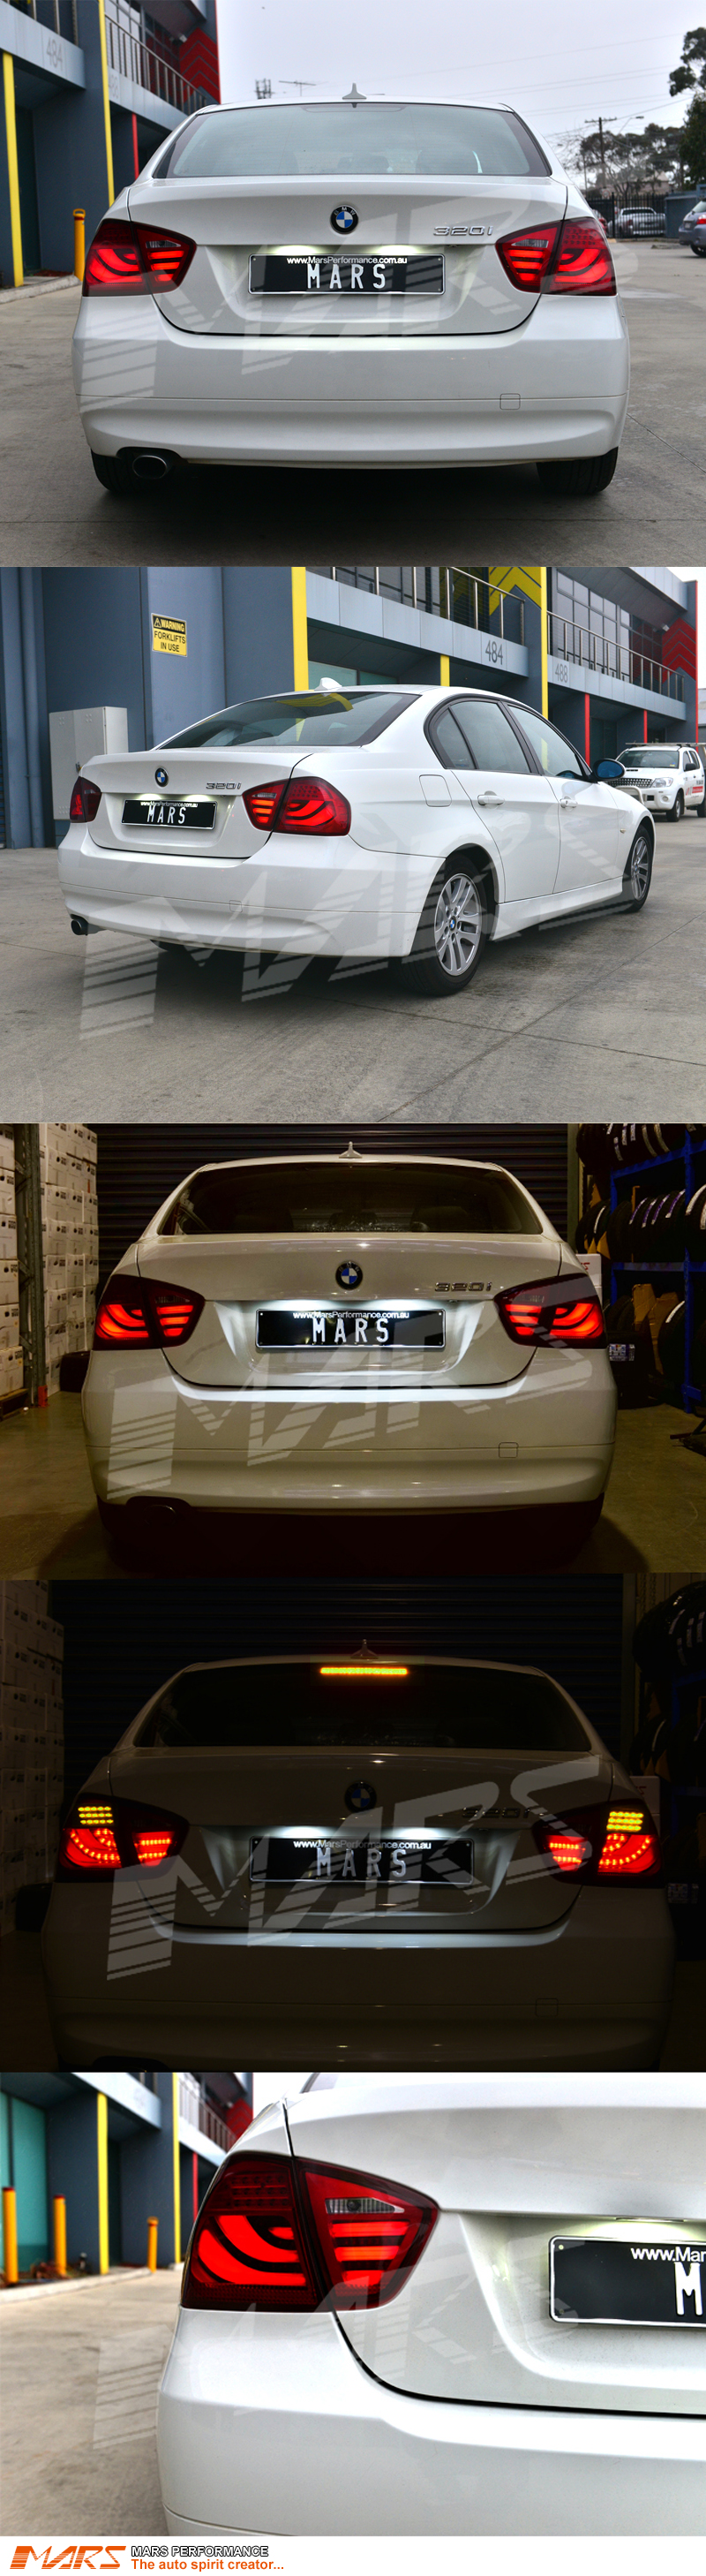 full red 3d stripe bar led tail lights for bmw 3 series. Black Bedroom Furniture Sets. Home Design Ideas